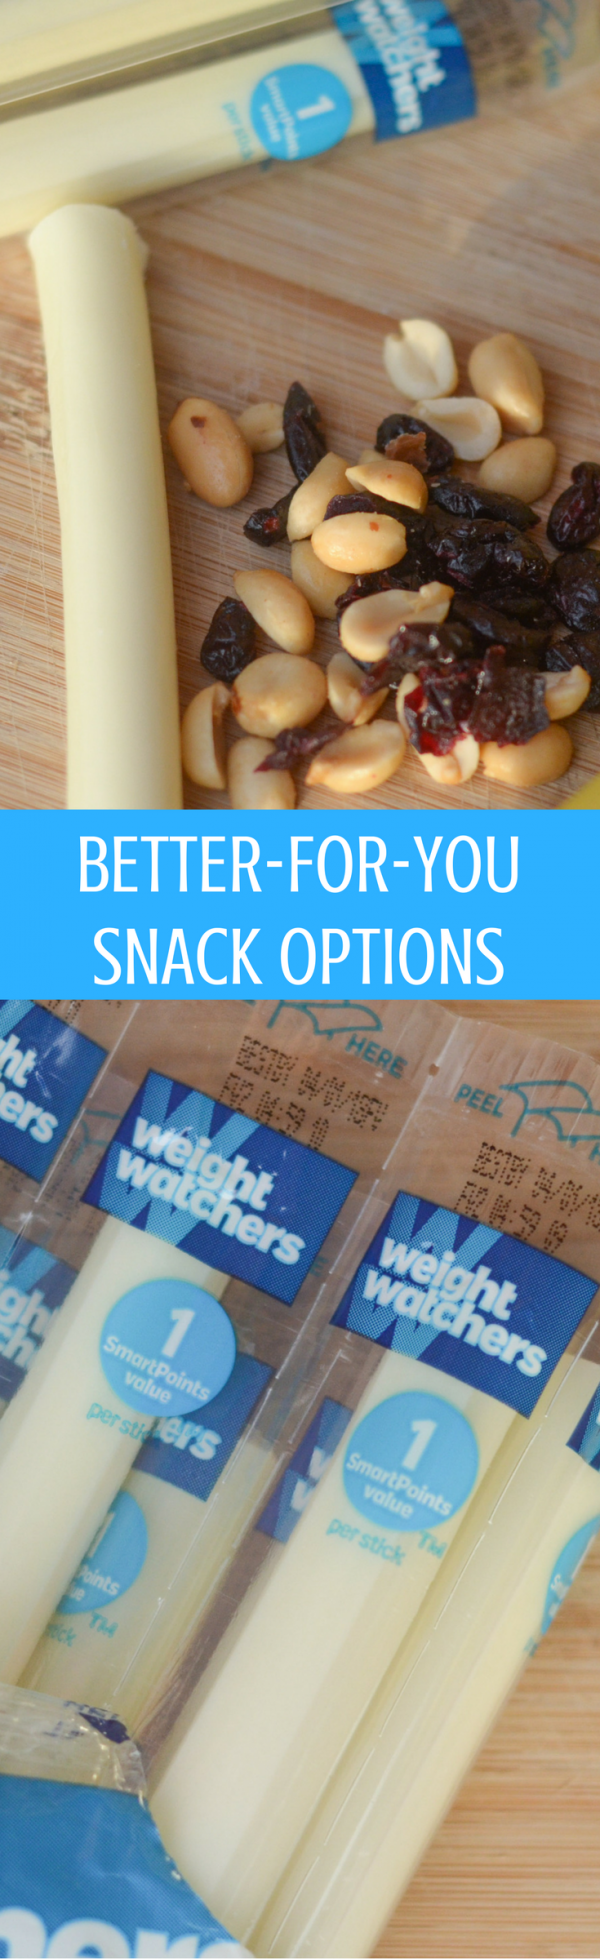 Better-For-You Snack Options